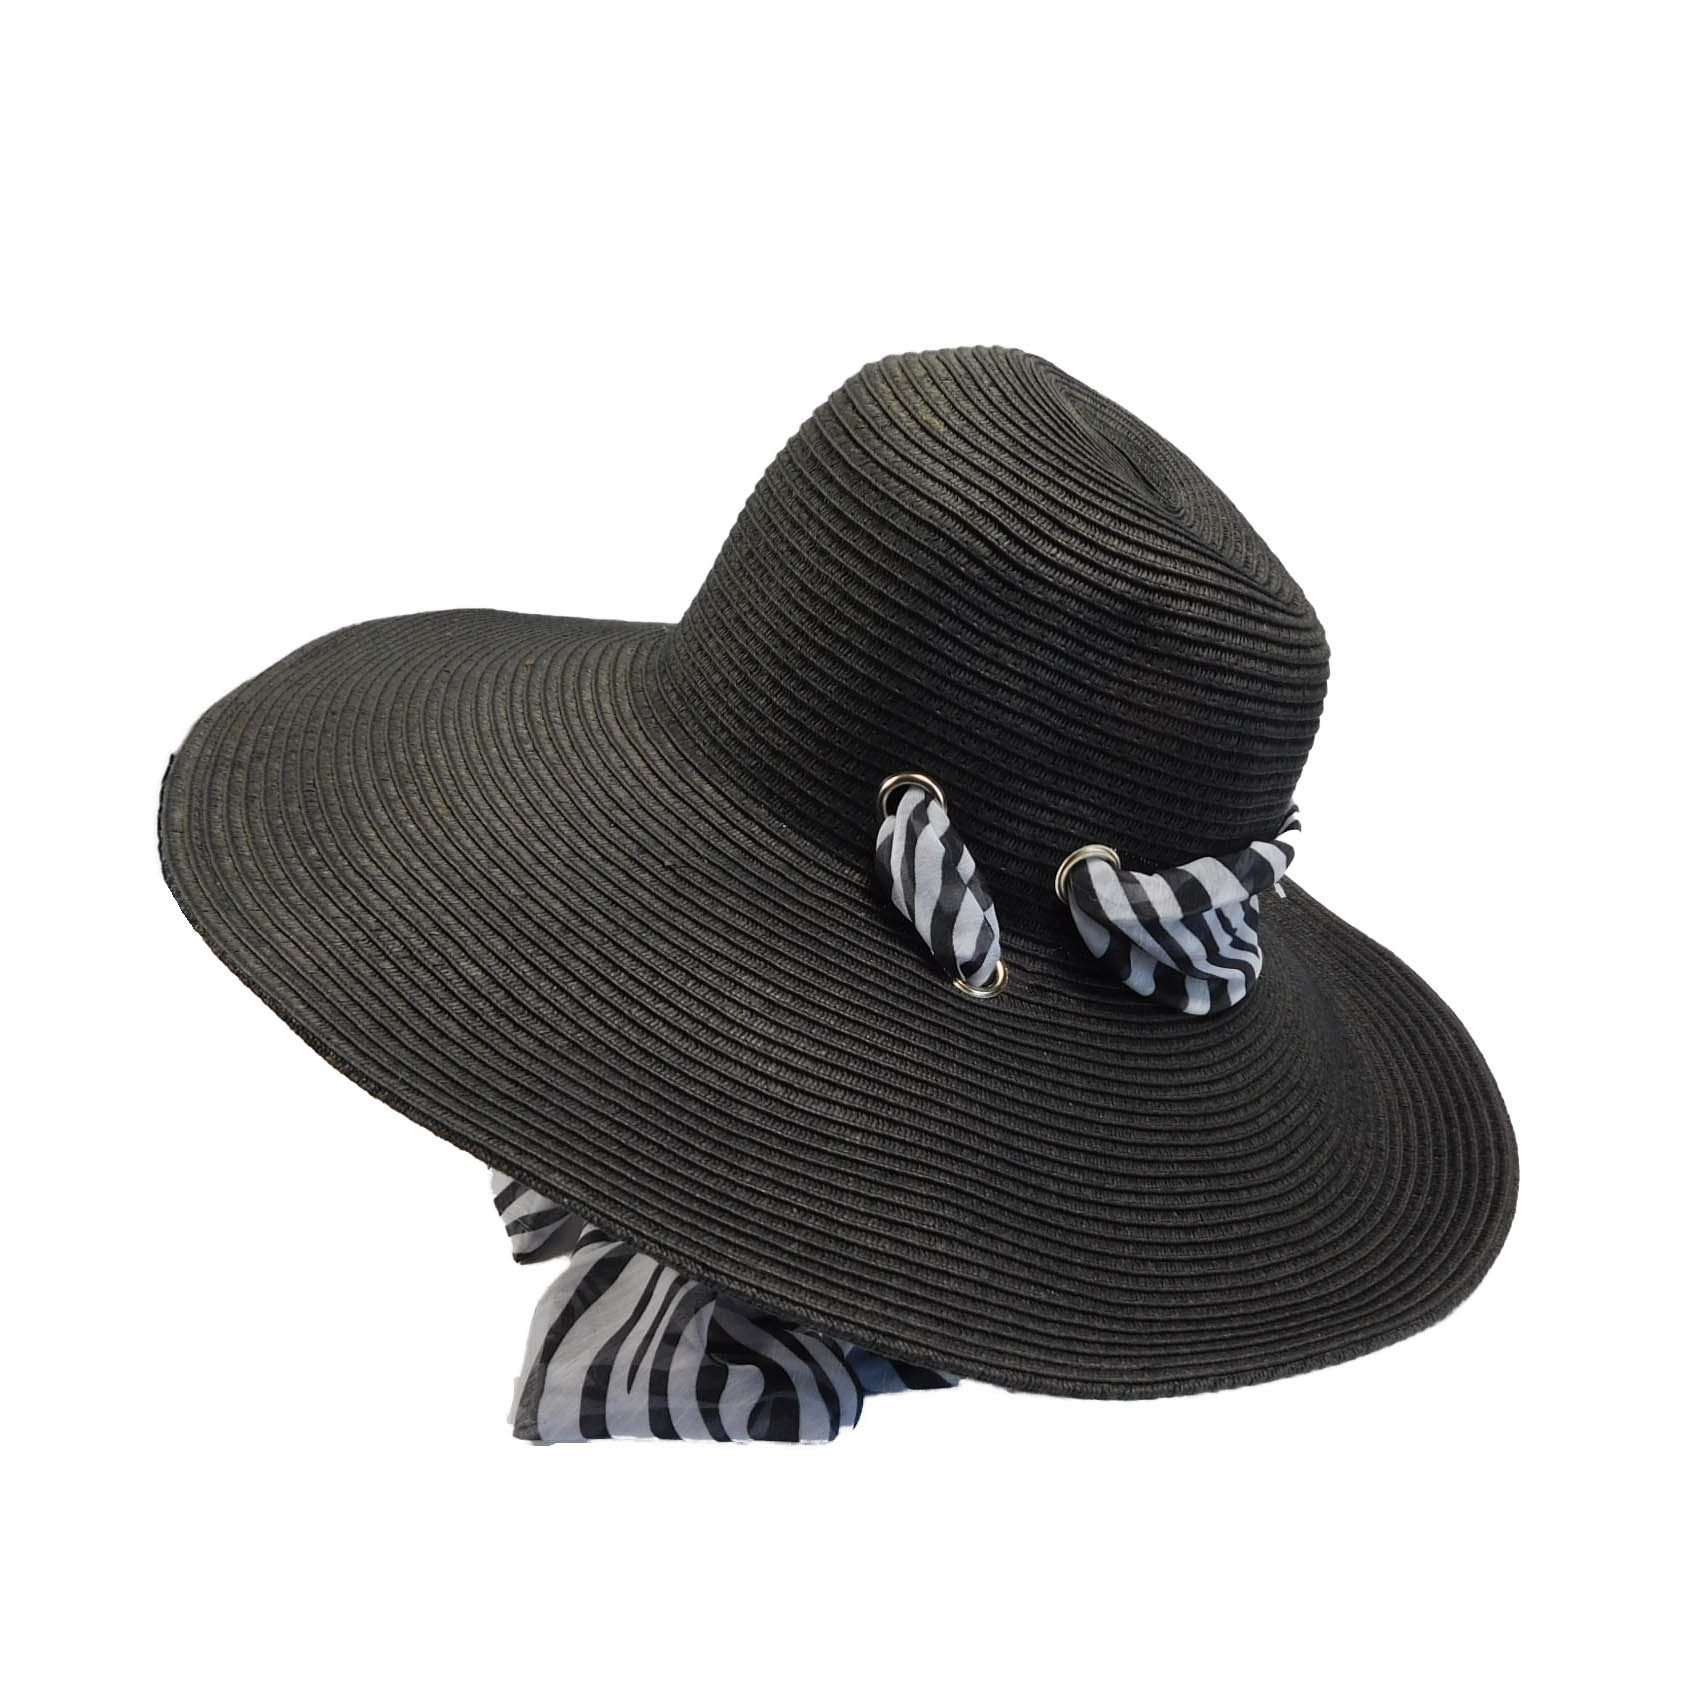 Large Straw Floppy Hat with Scarf - SetarTrading Hats